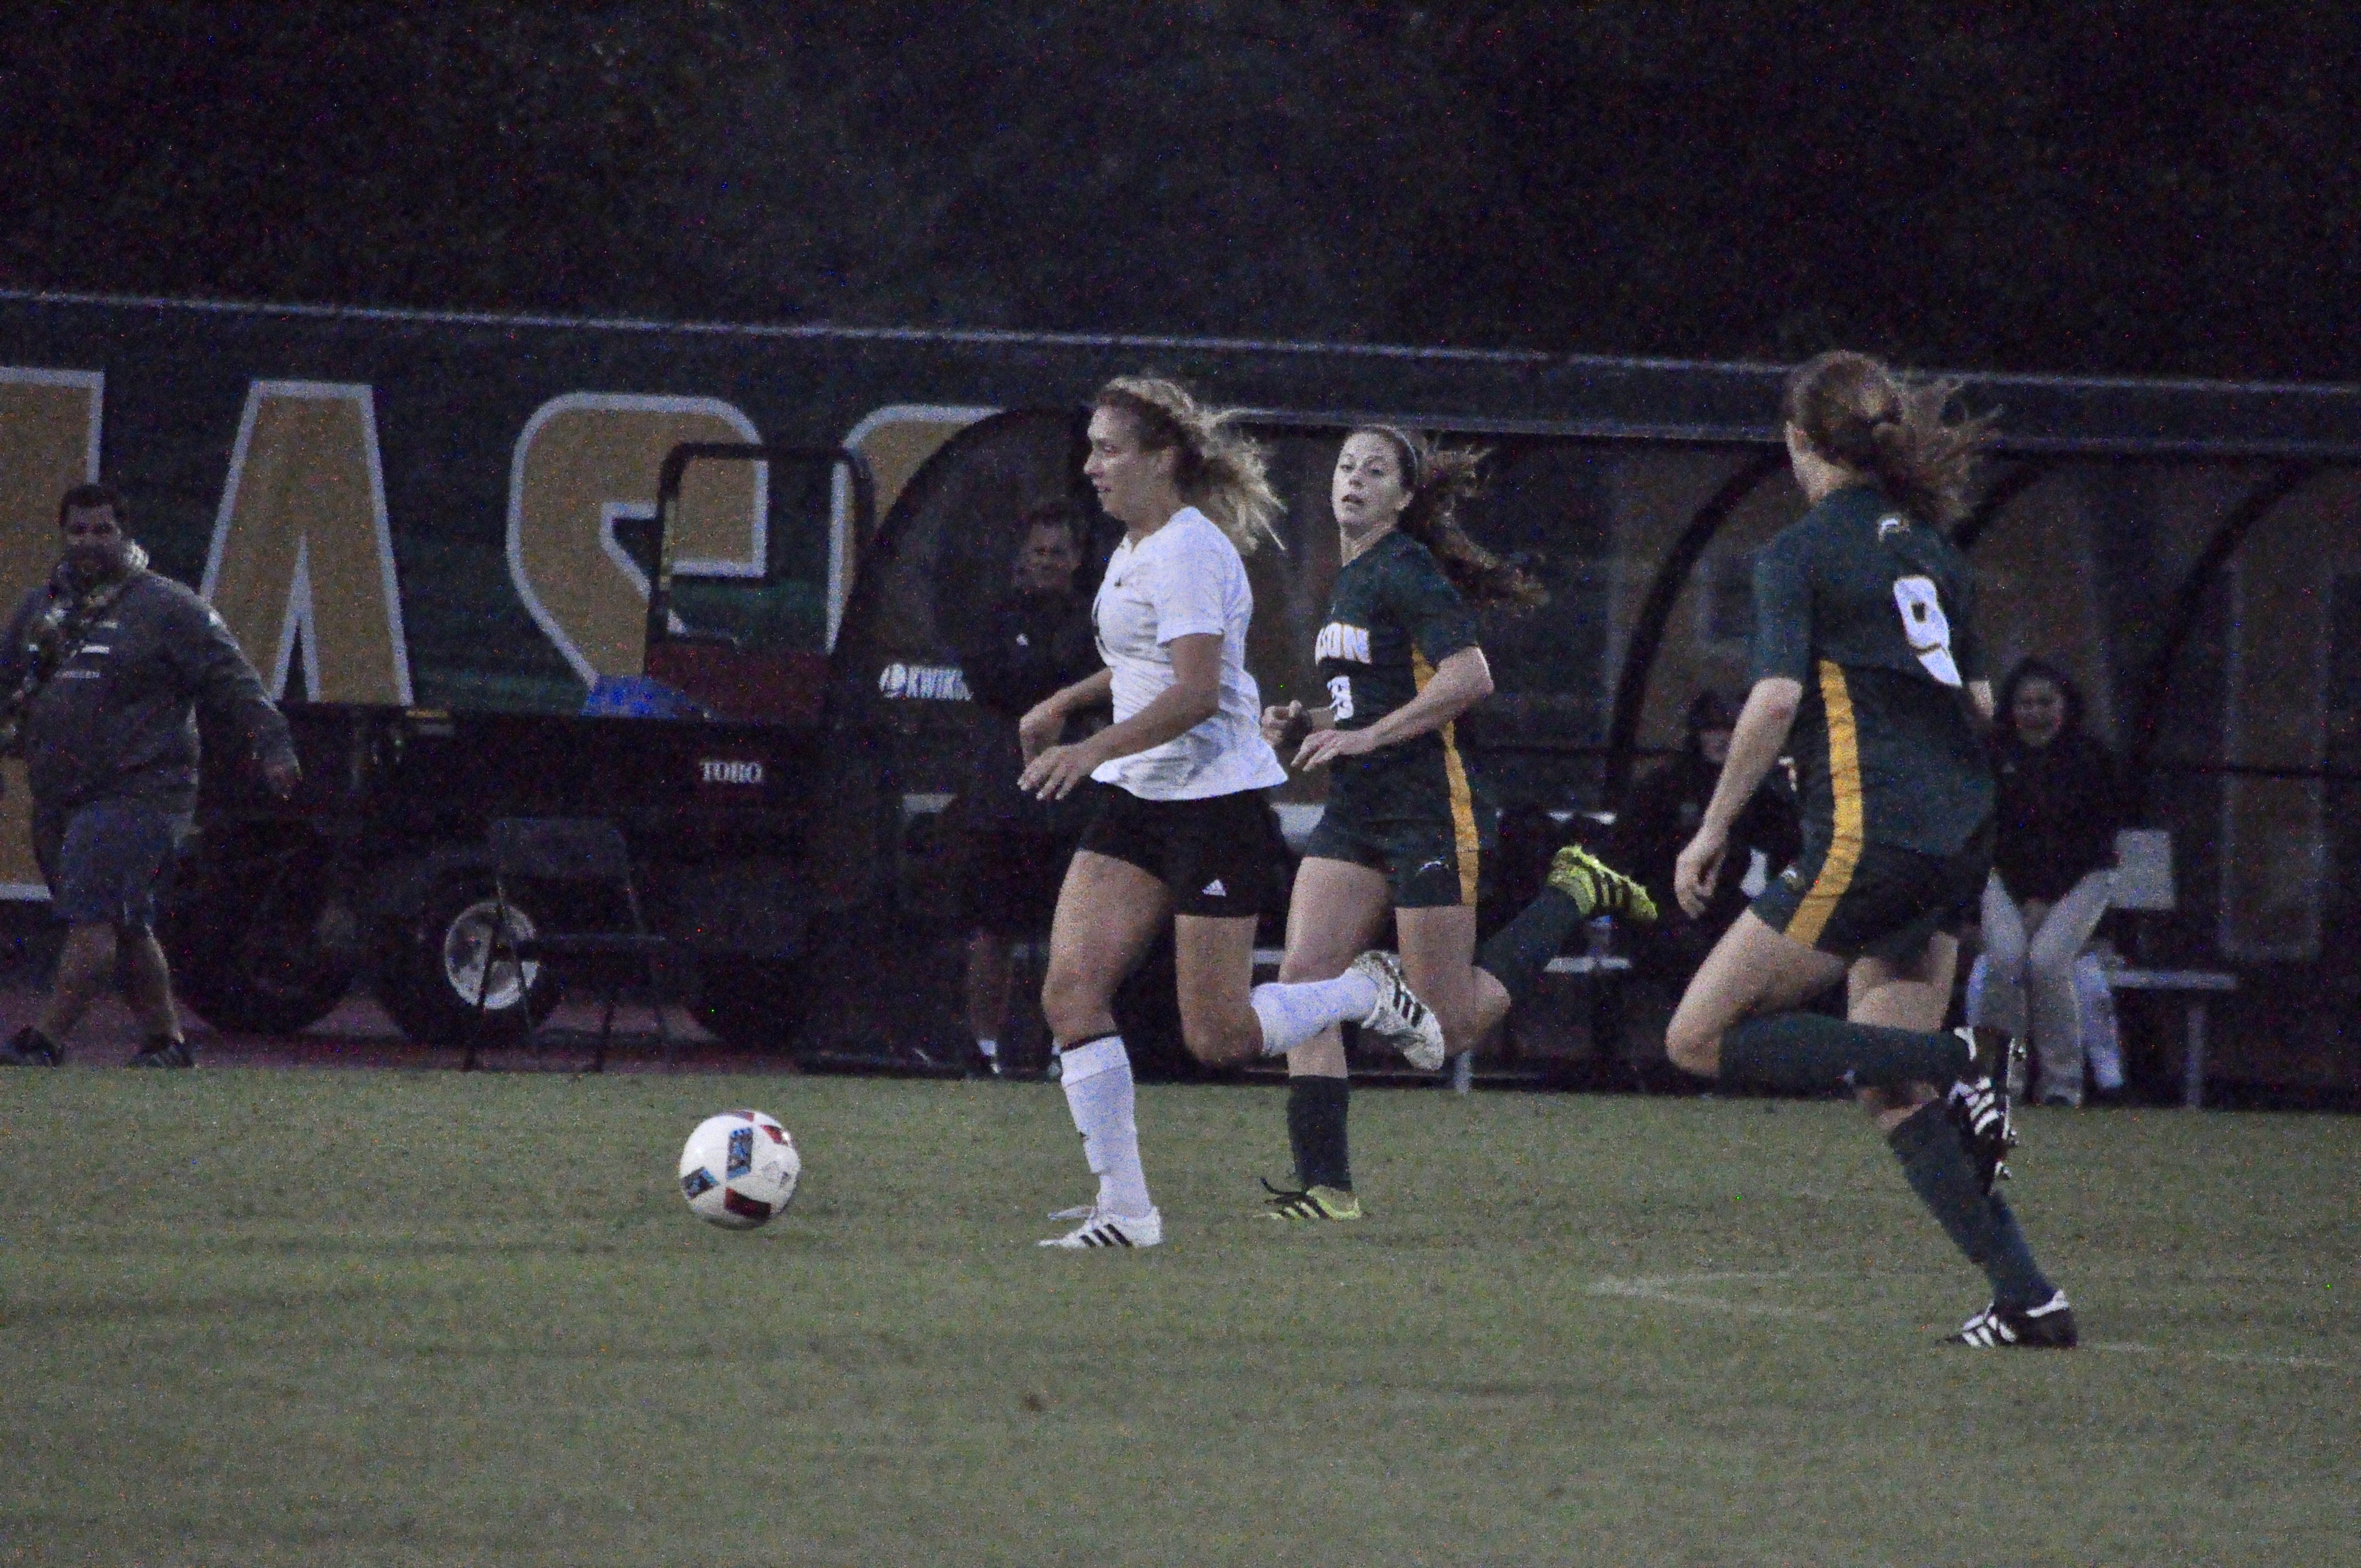 Erin Mitchell (back) chases the ball during the match on September 29. Credit: Dave Schrack, IV Estate